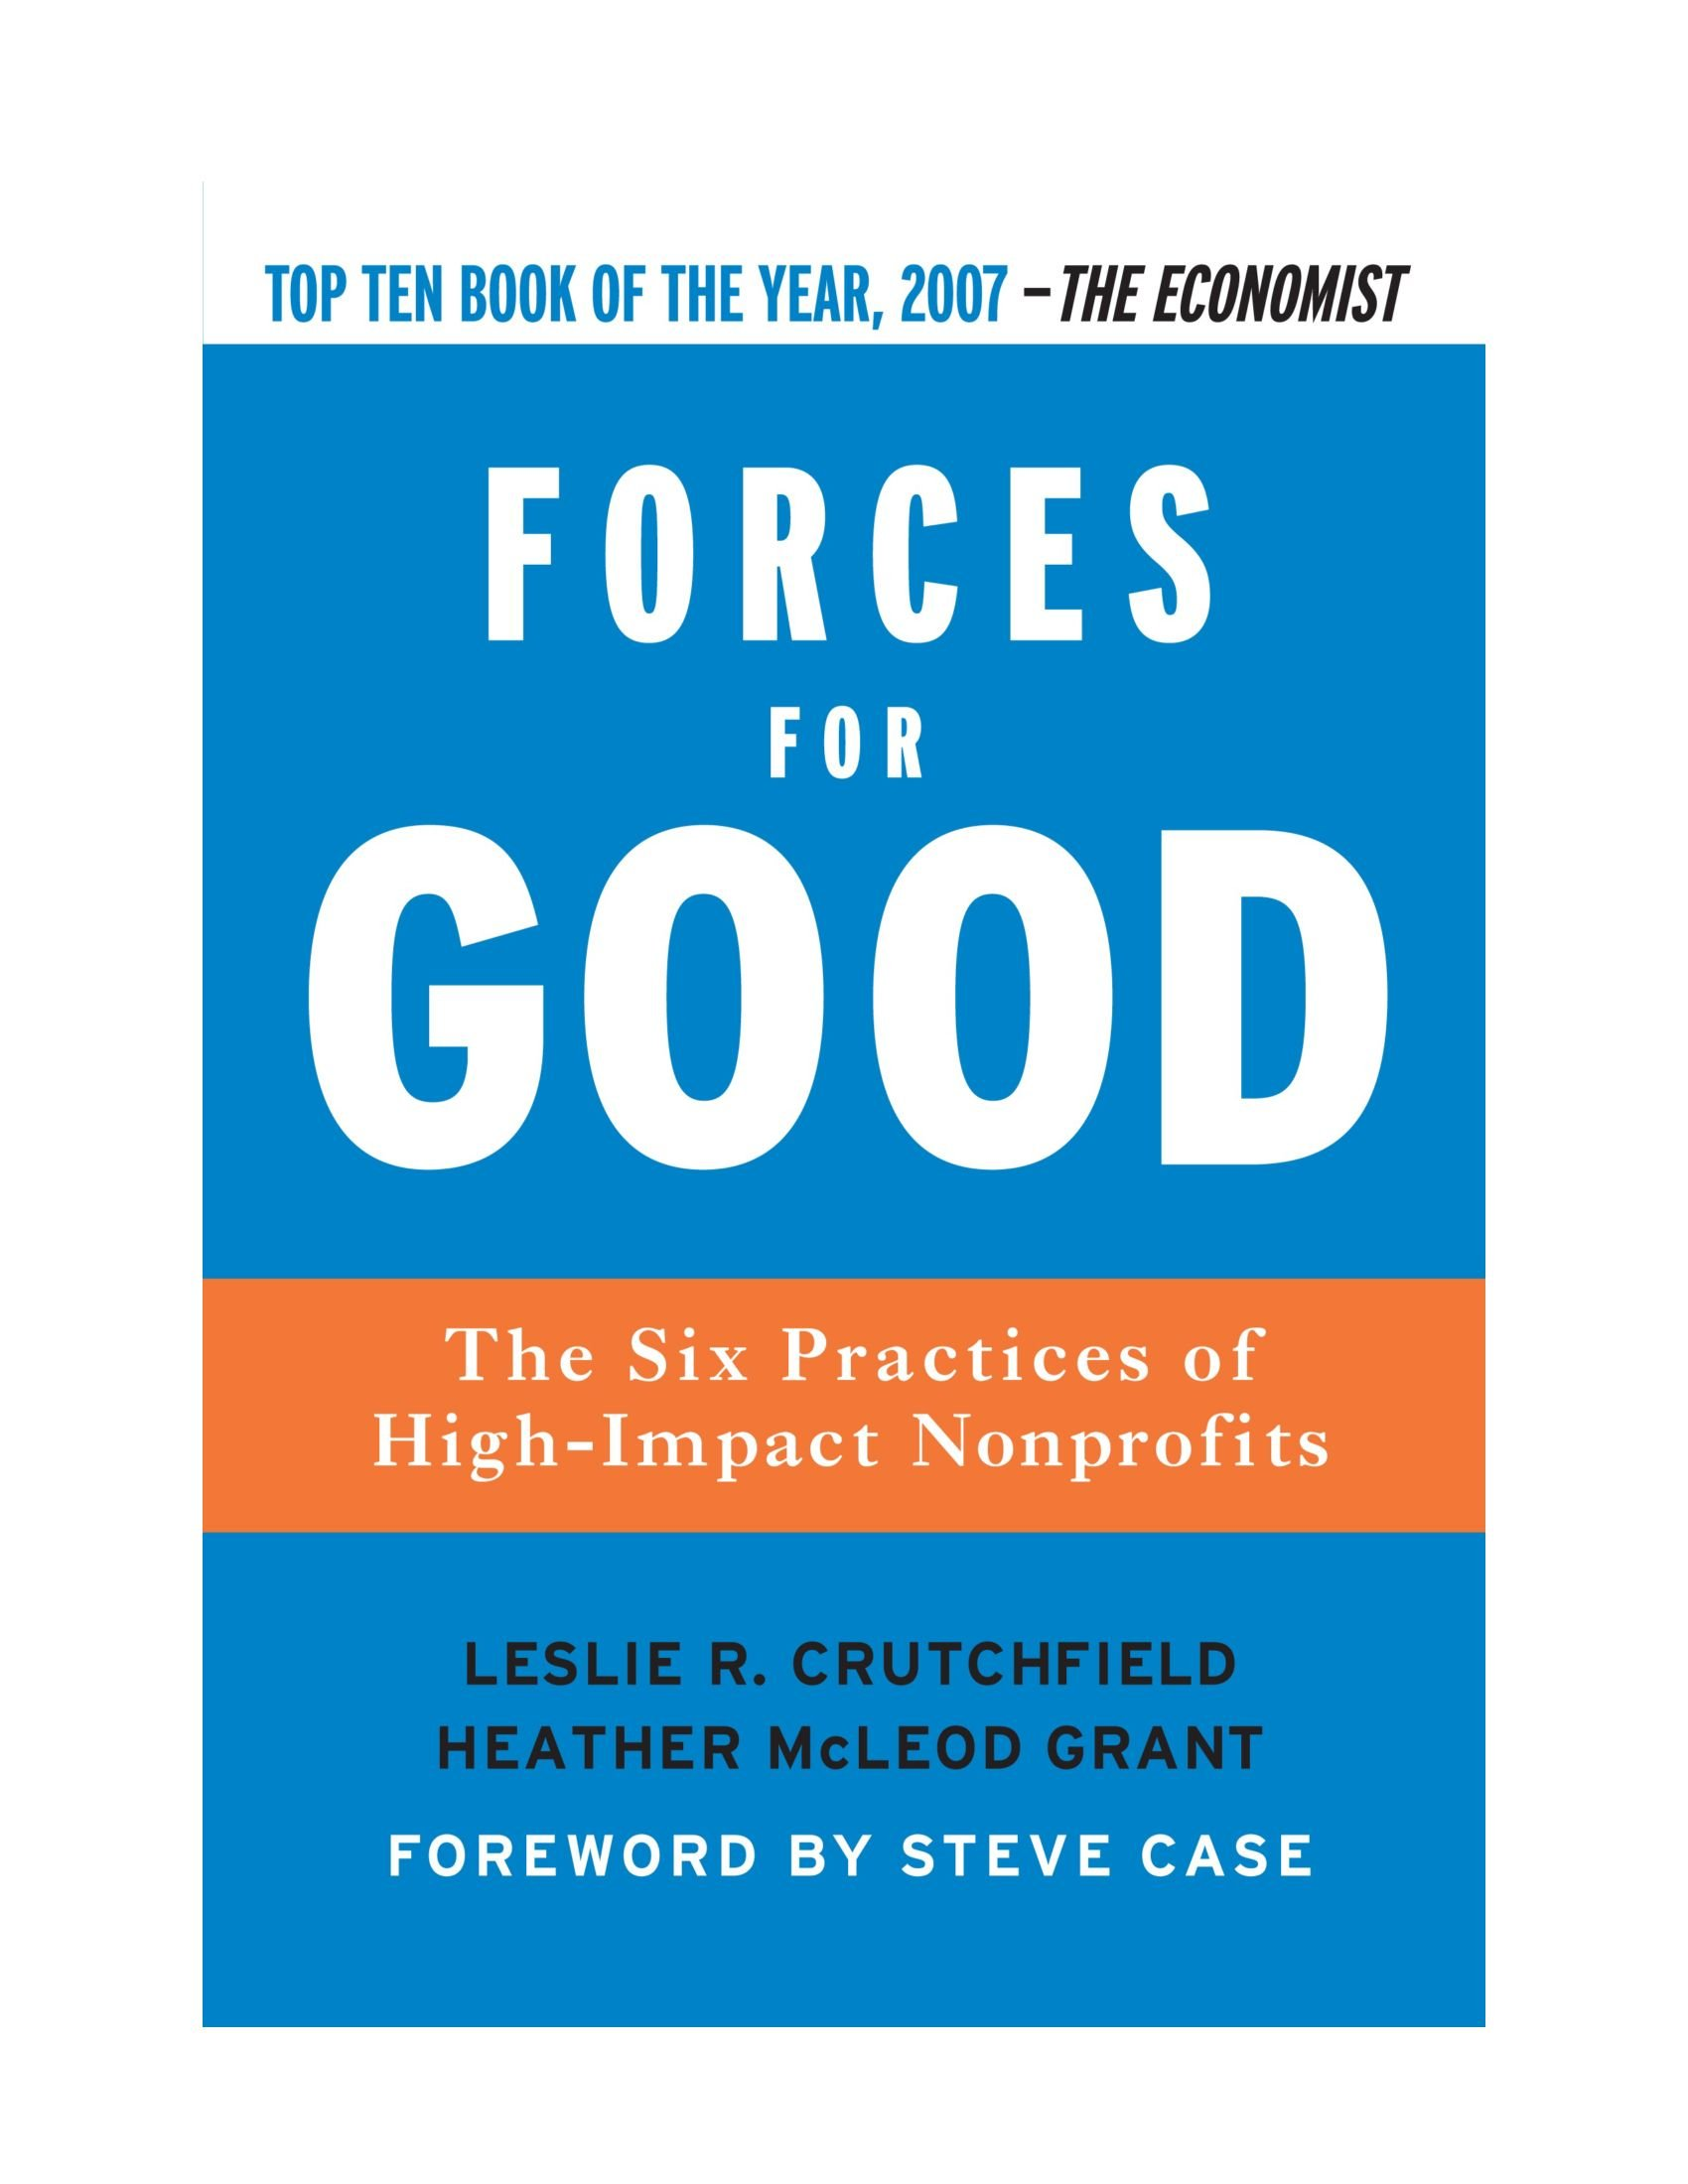 Forces for Good, The Six Practices of High-Impact Nonprofits